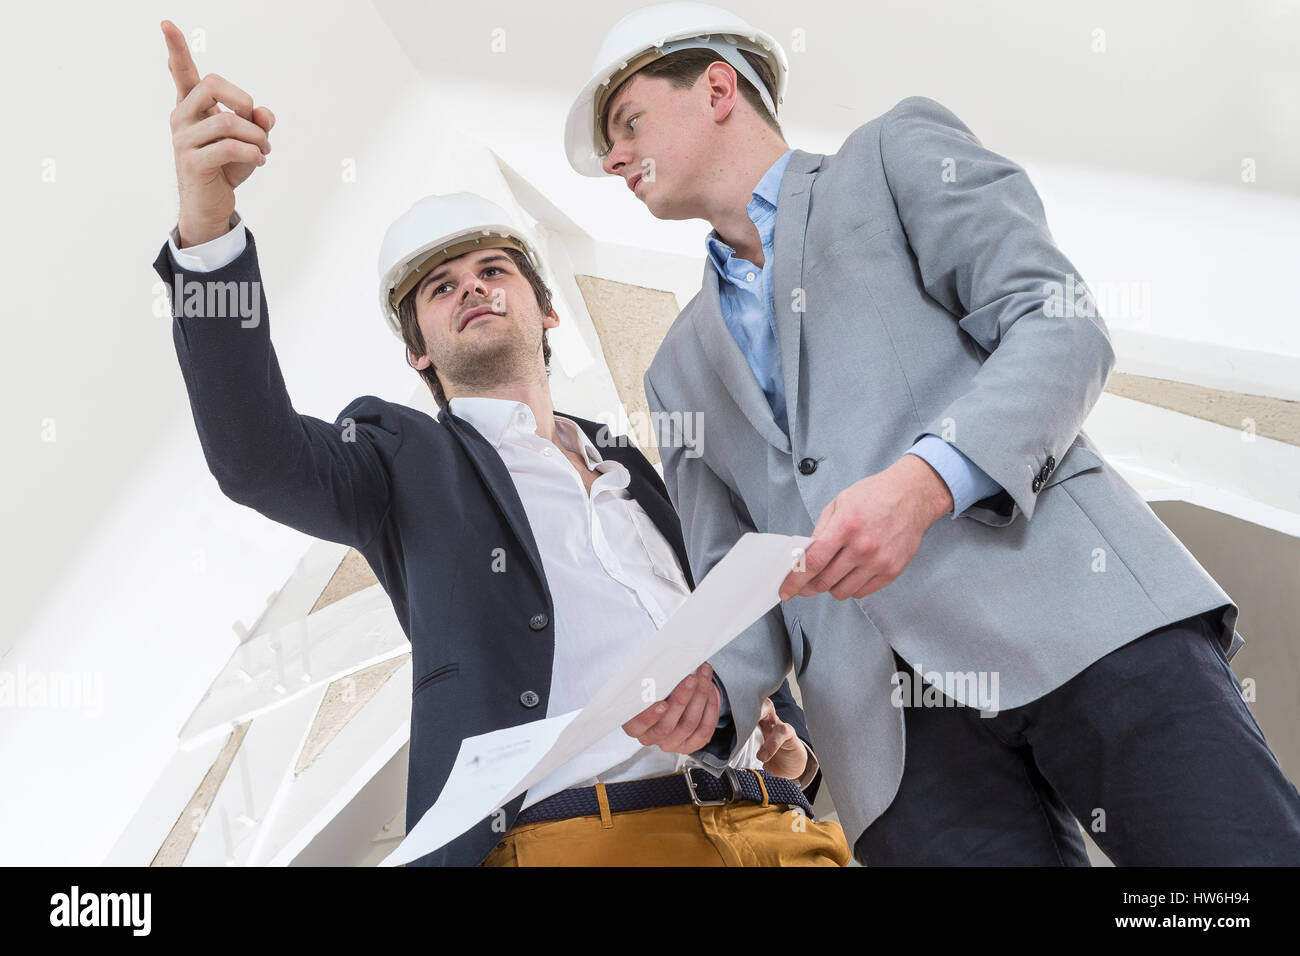 Two Engineer or Architect discuss on Project at Construction site in white envuronment - Stock Image